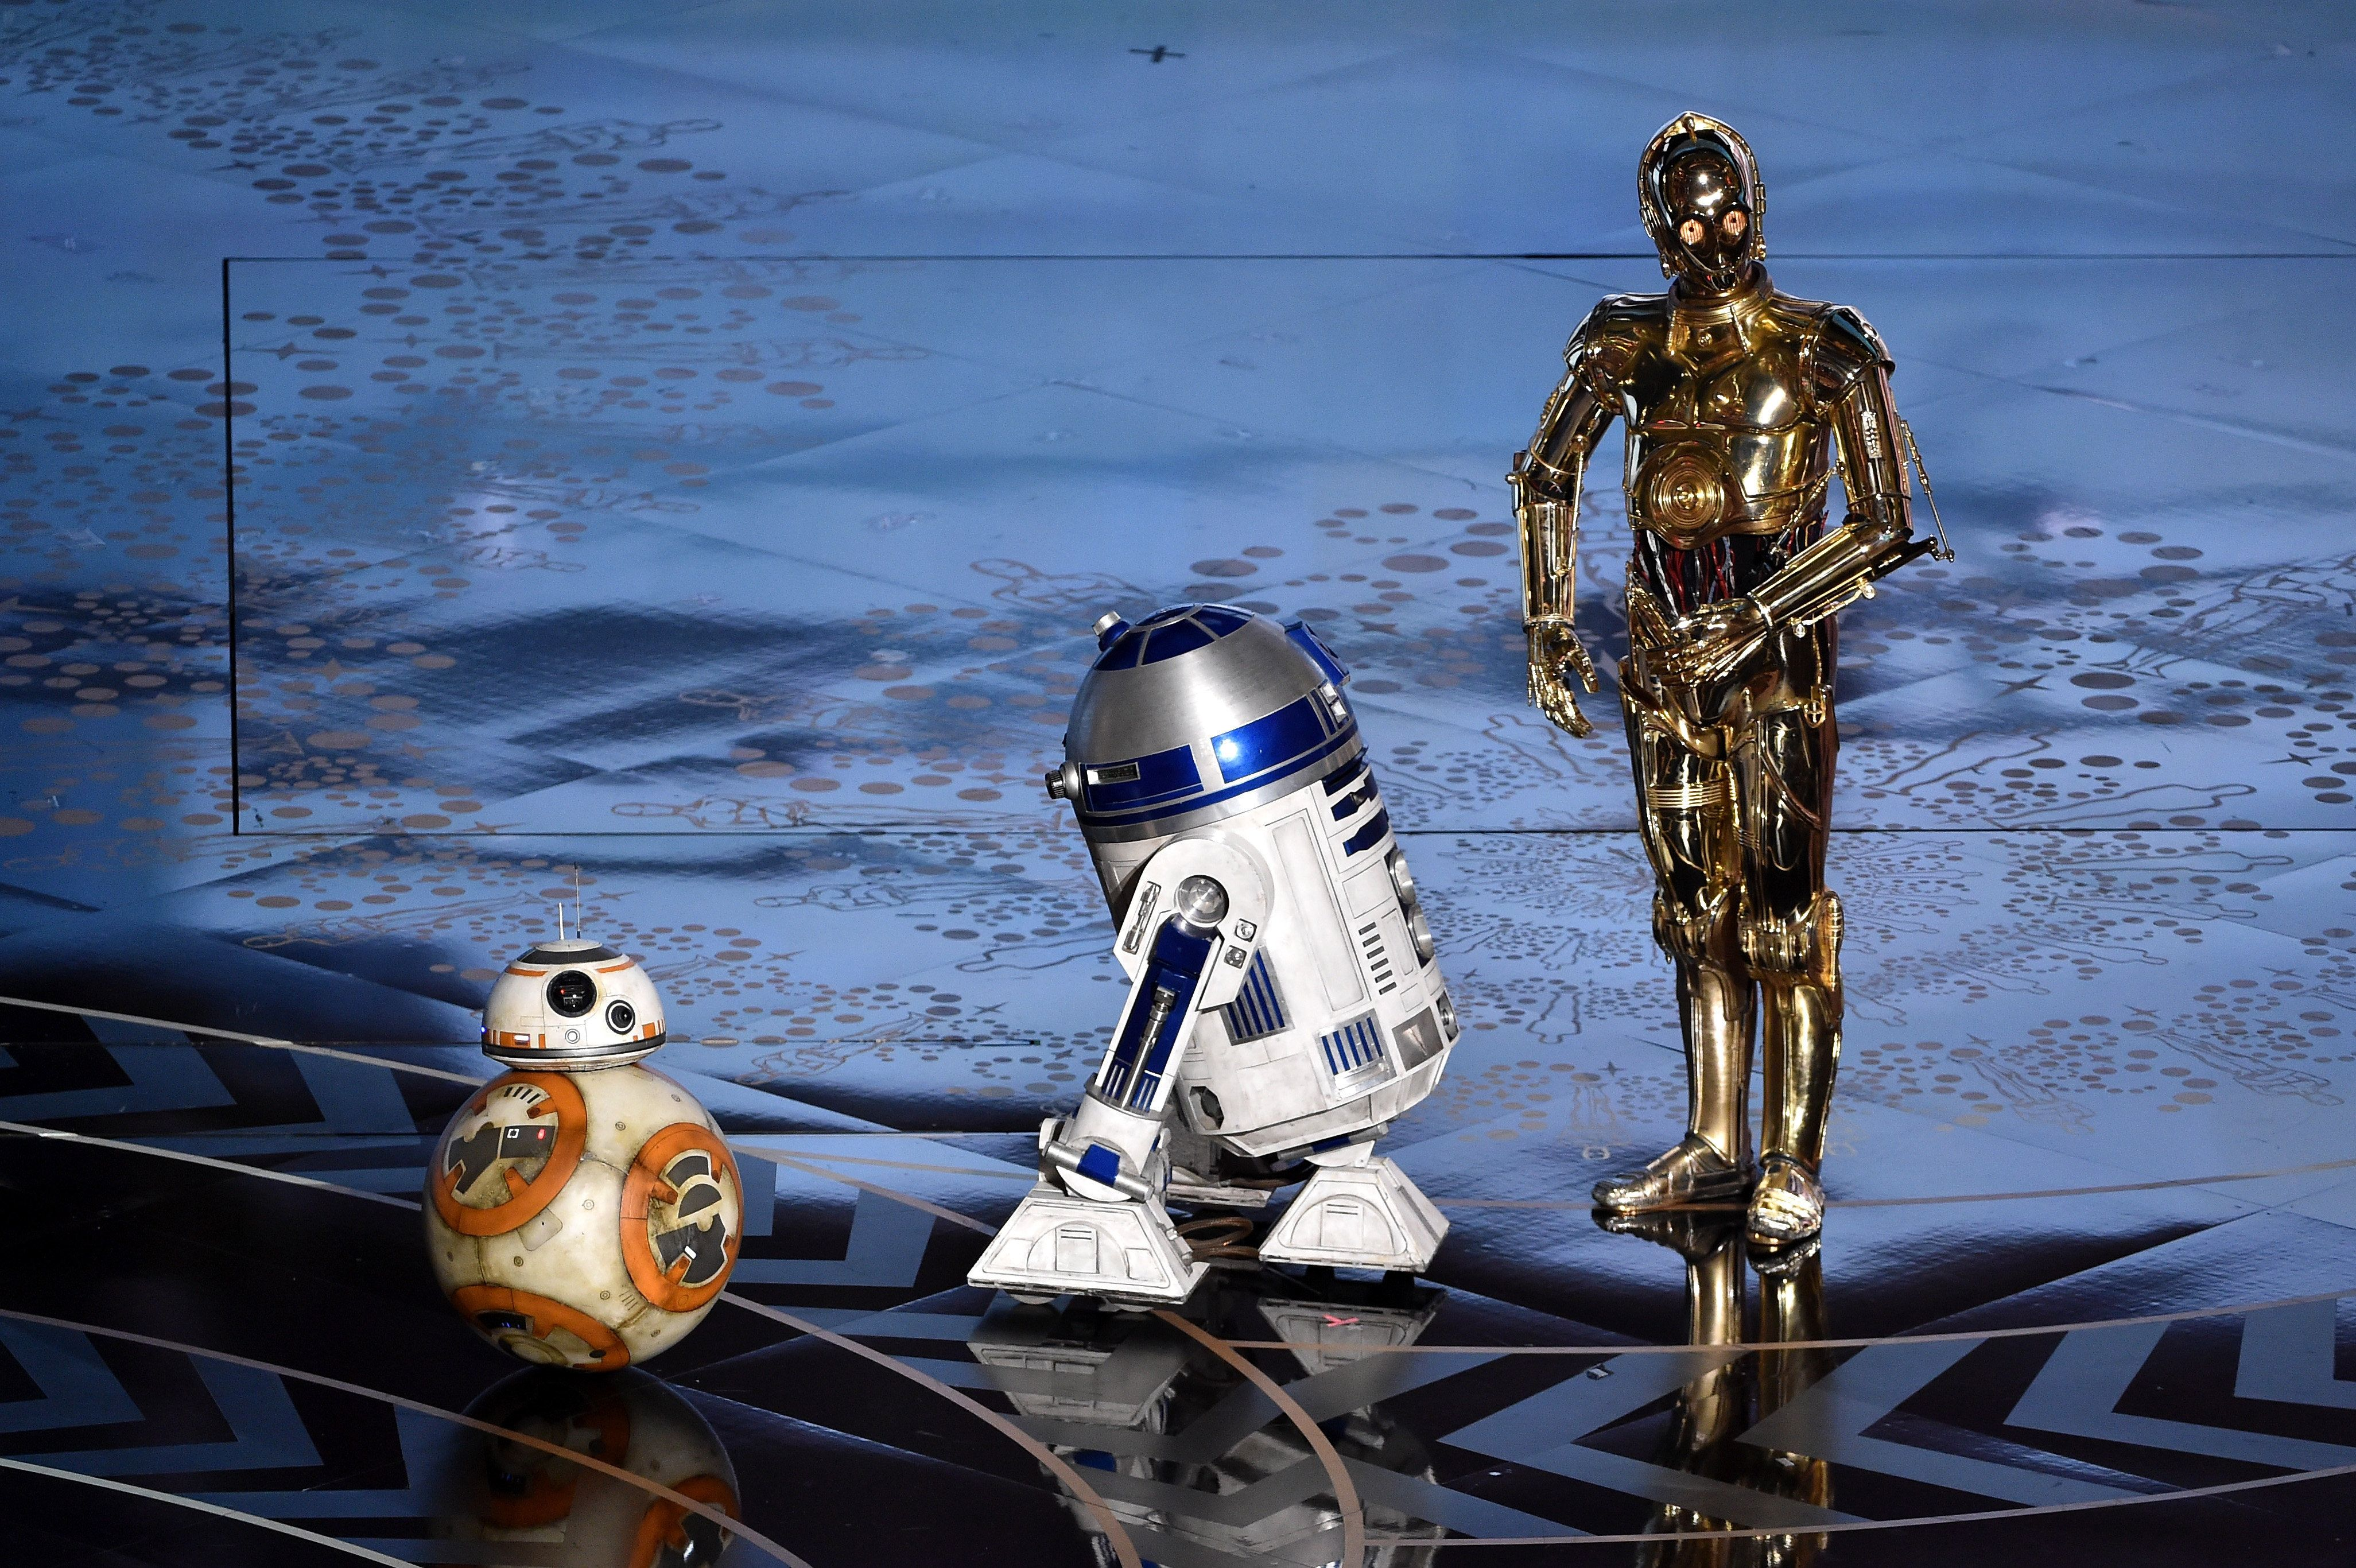 HOLLYWOOD, CA - FEBRUARY 28:  (L-R) BB-8, R2-D2 and C-3PO from 'Star Wars' appear onstage during the 88th Annual Academy Awards at the Dolby Theatre on February 28, 2016 in Hollywood, California.  (Photo by Kevin Winter/Getty Images)